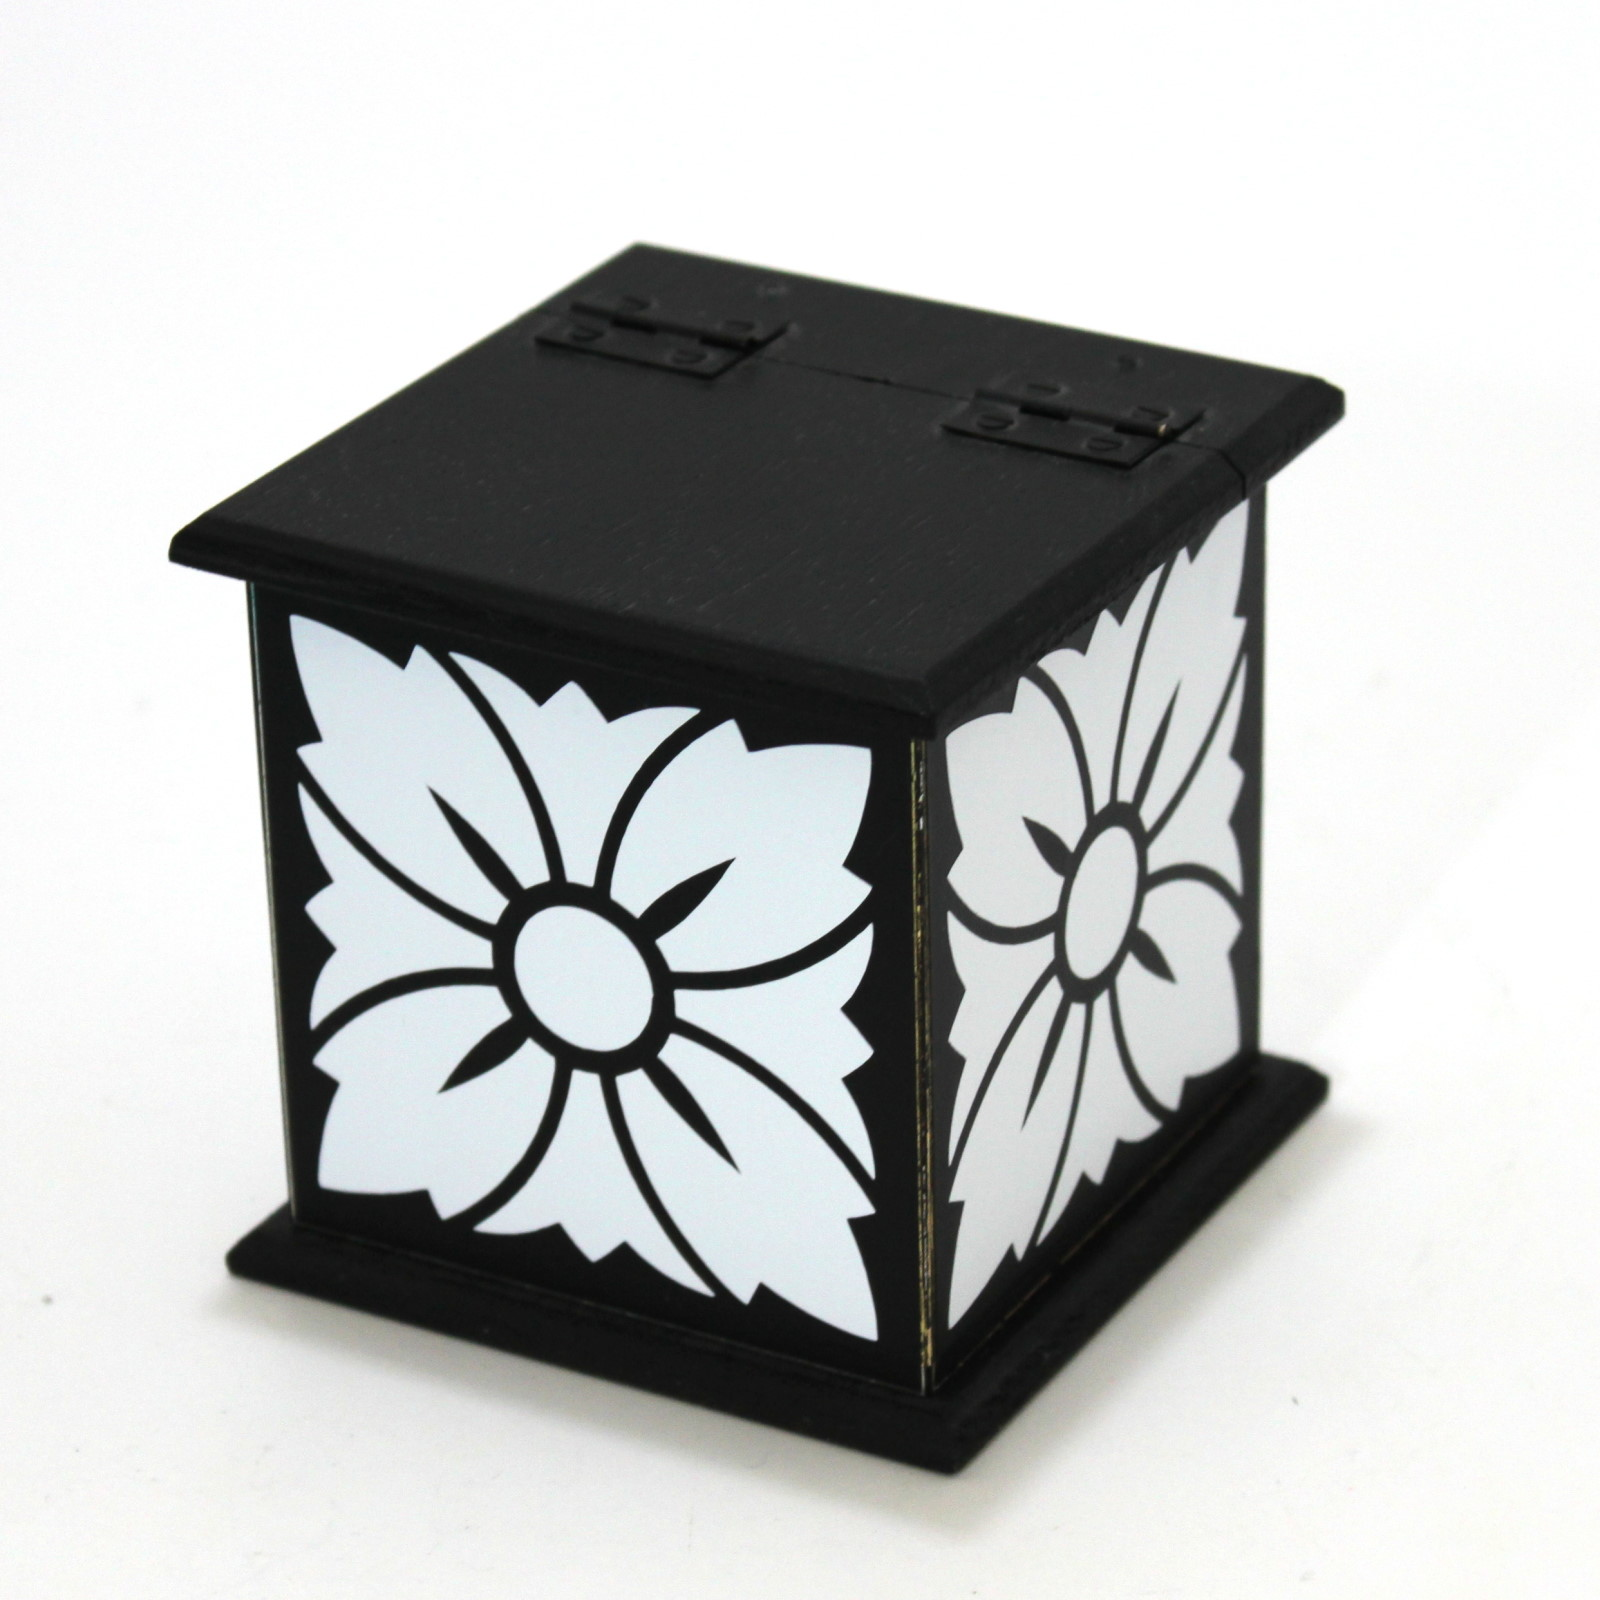 Color Changing Box by Thomas Pohle